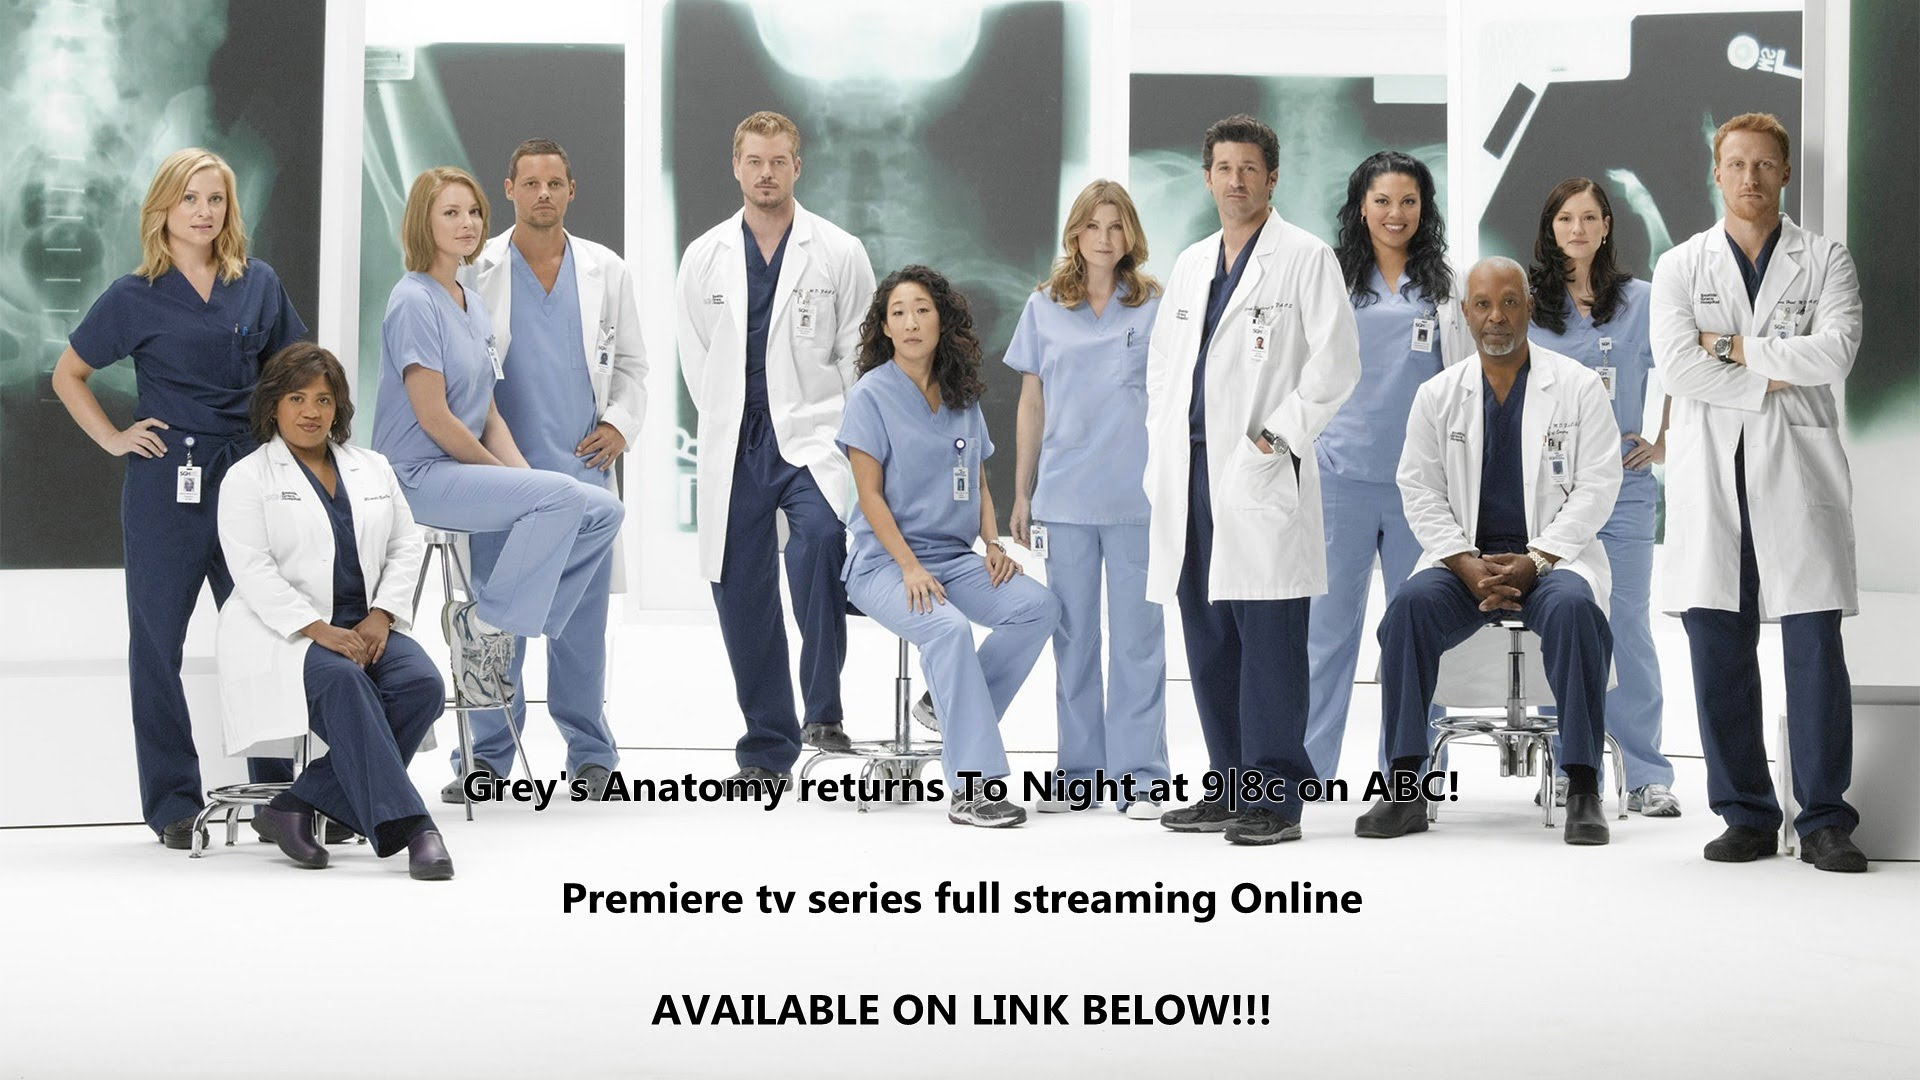 Youtube Greys Anatomy Season 12 Episode 11 Watch Full Episodes